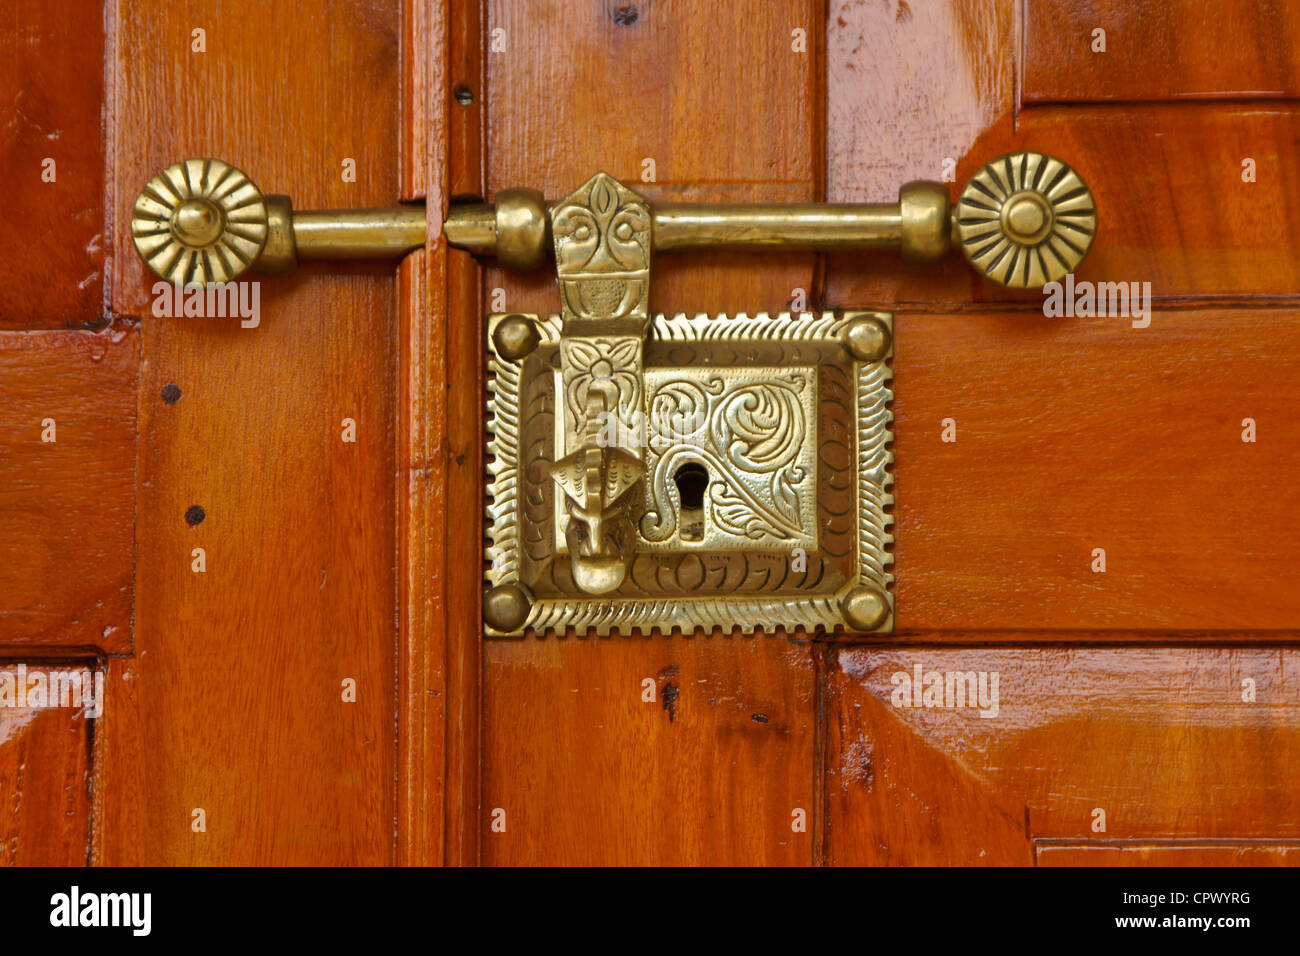 Door Designs Sri Lanka Photo Gallery Brass Lock On Door At Asigiriya Maha Vihara Monastery